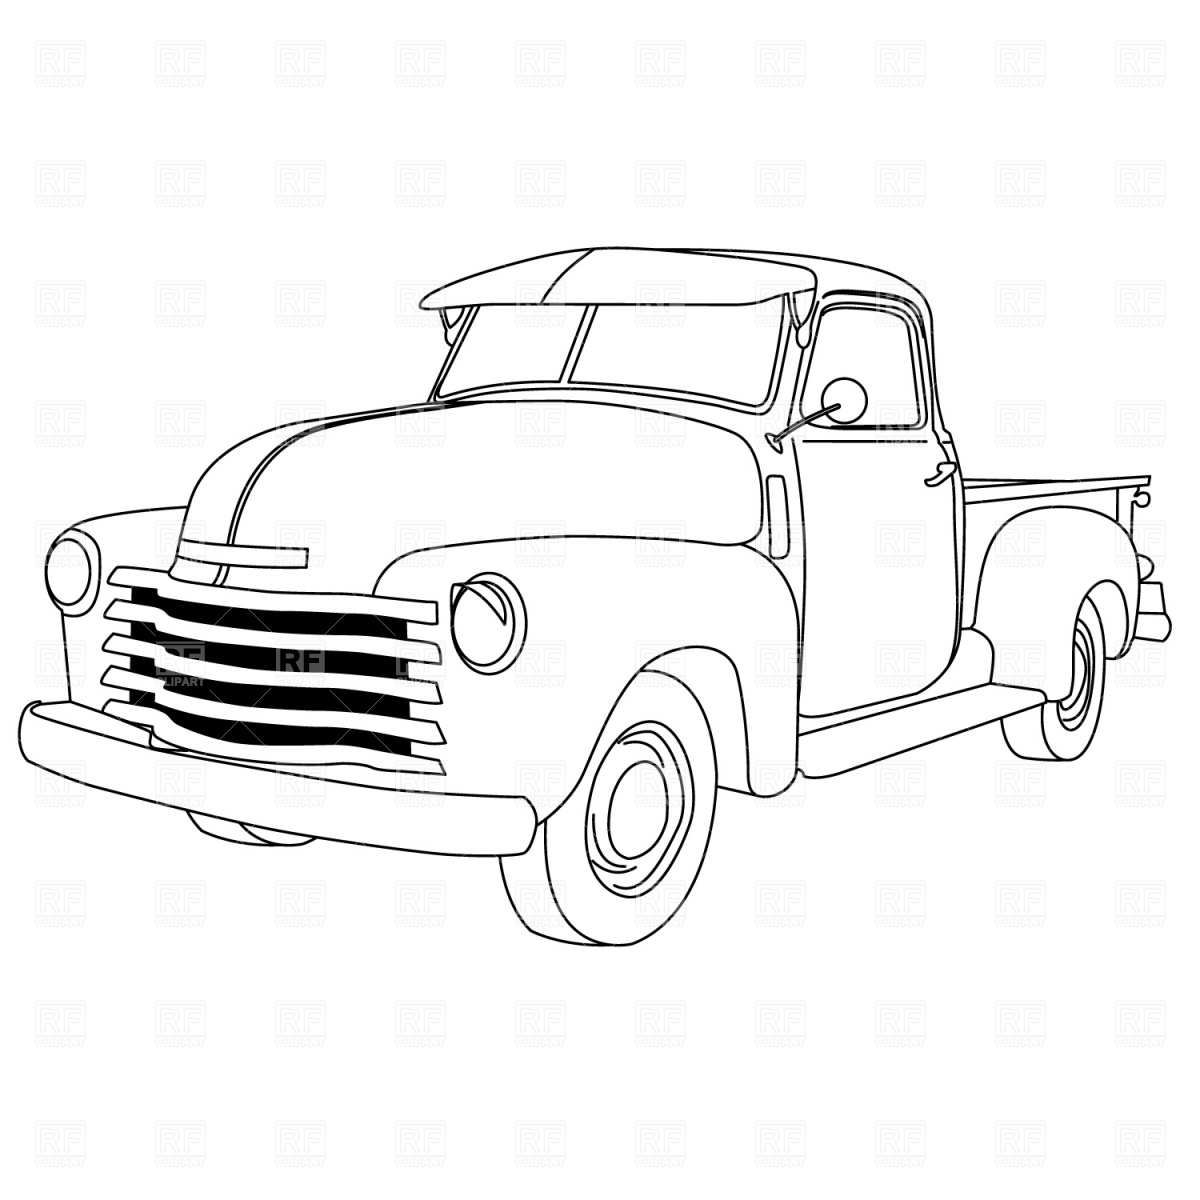 905x719 old car drawings 1200x1200 old trucks coloring old american pick up truck coloring